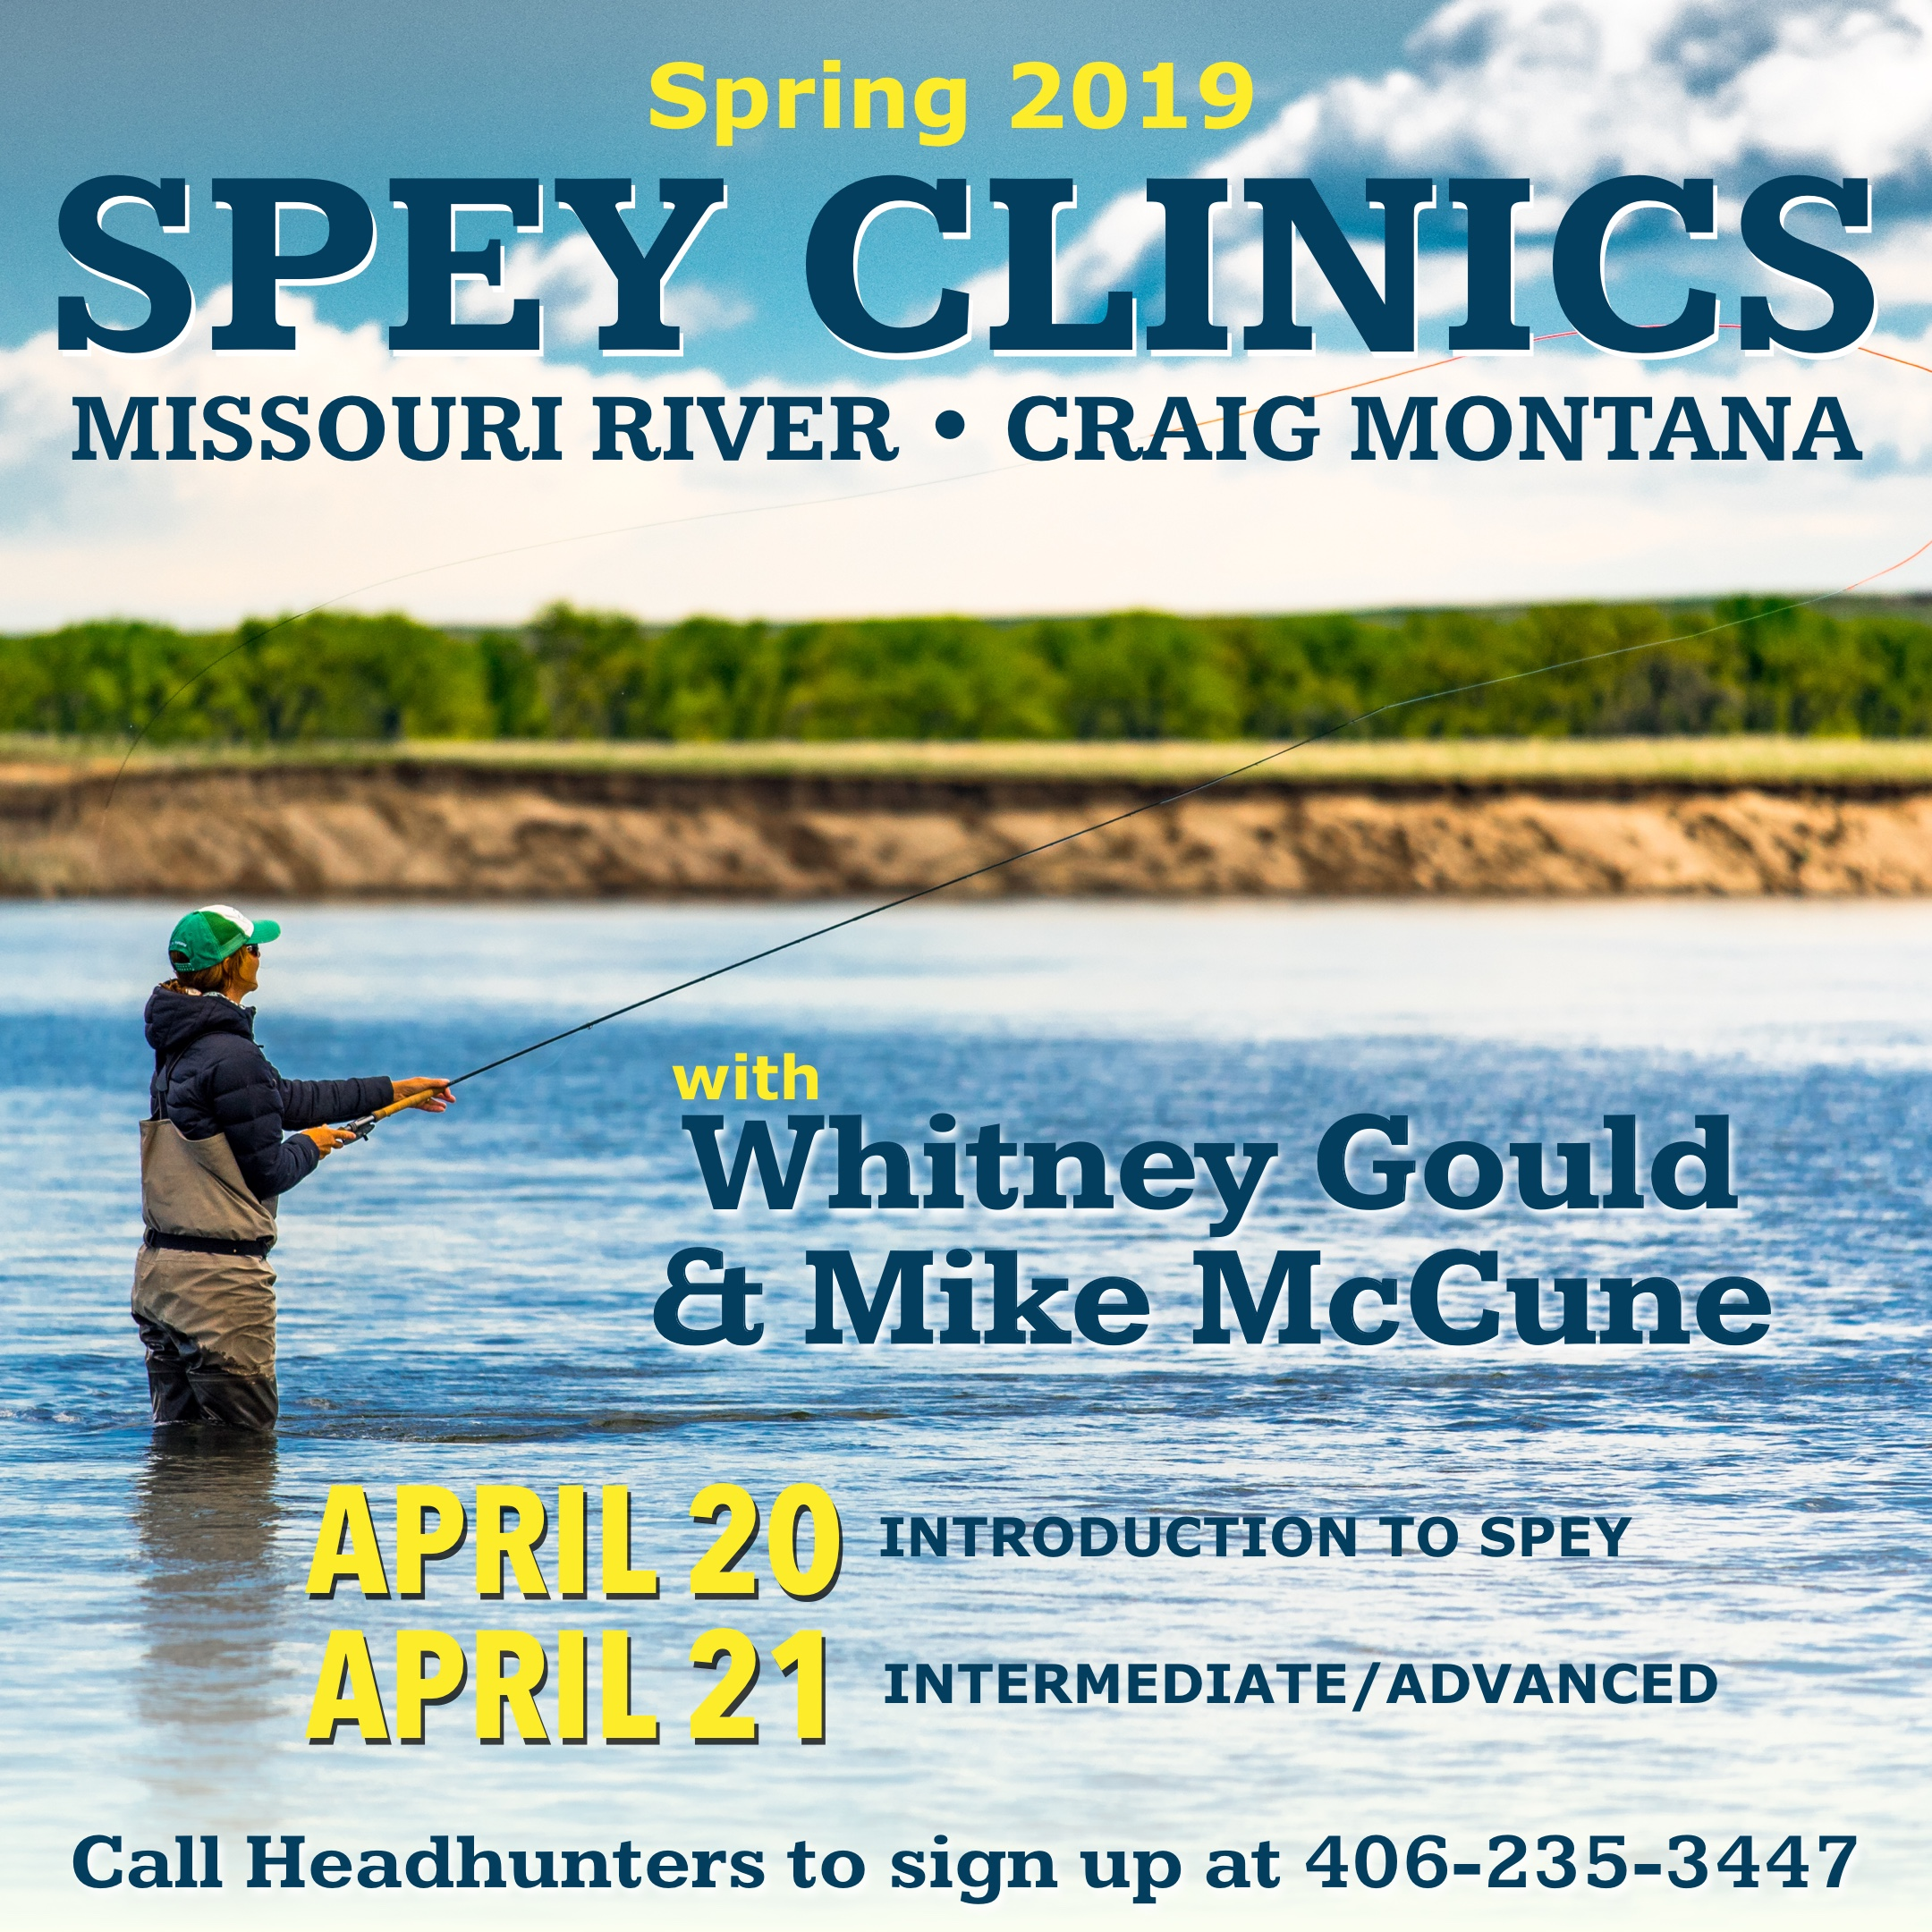 Gould McCune Spey Clinics Spring 2019